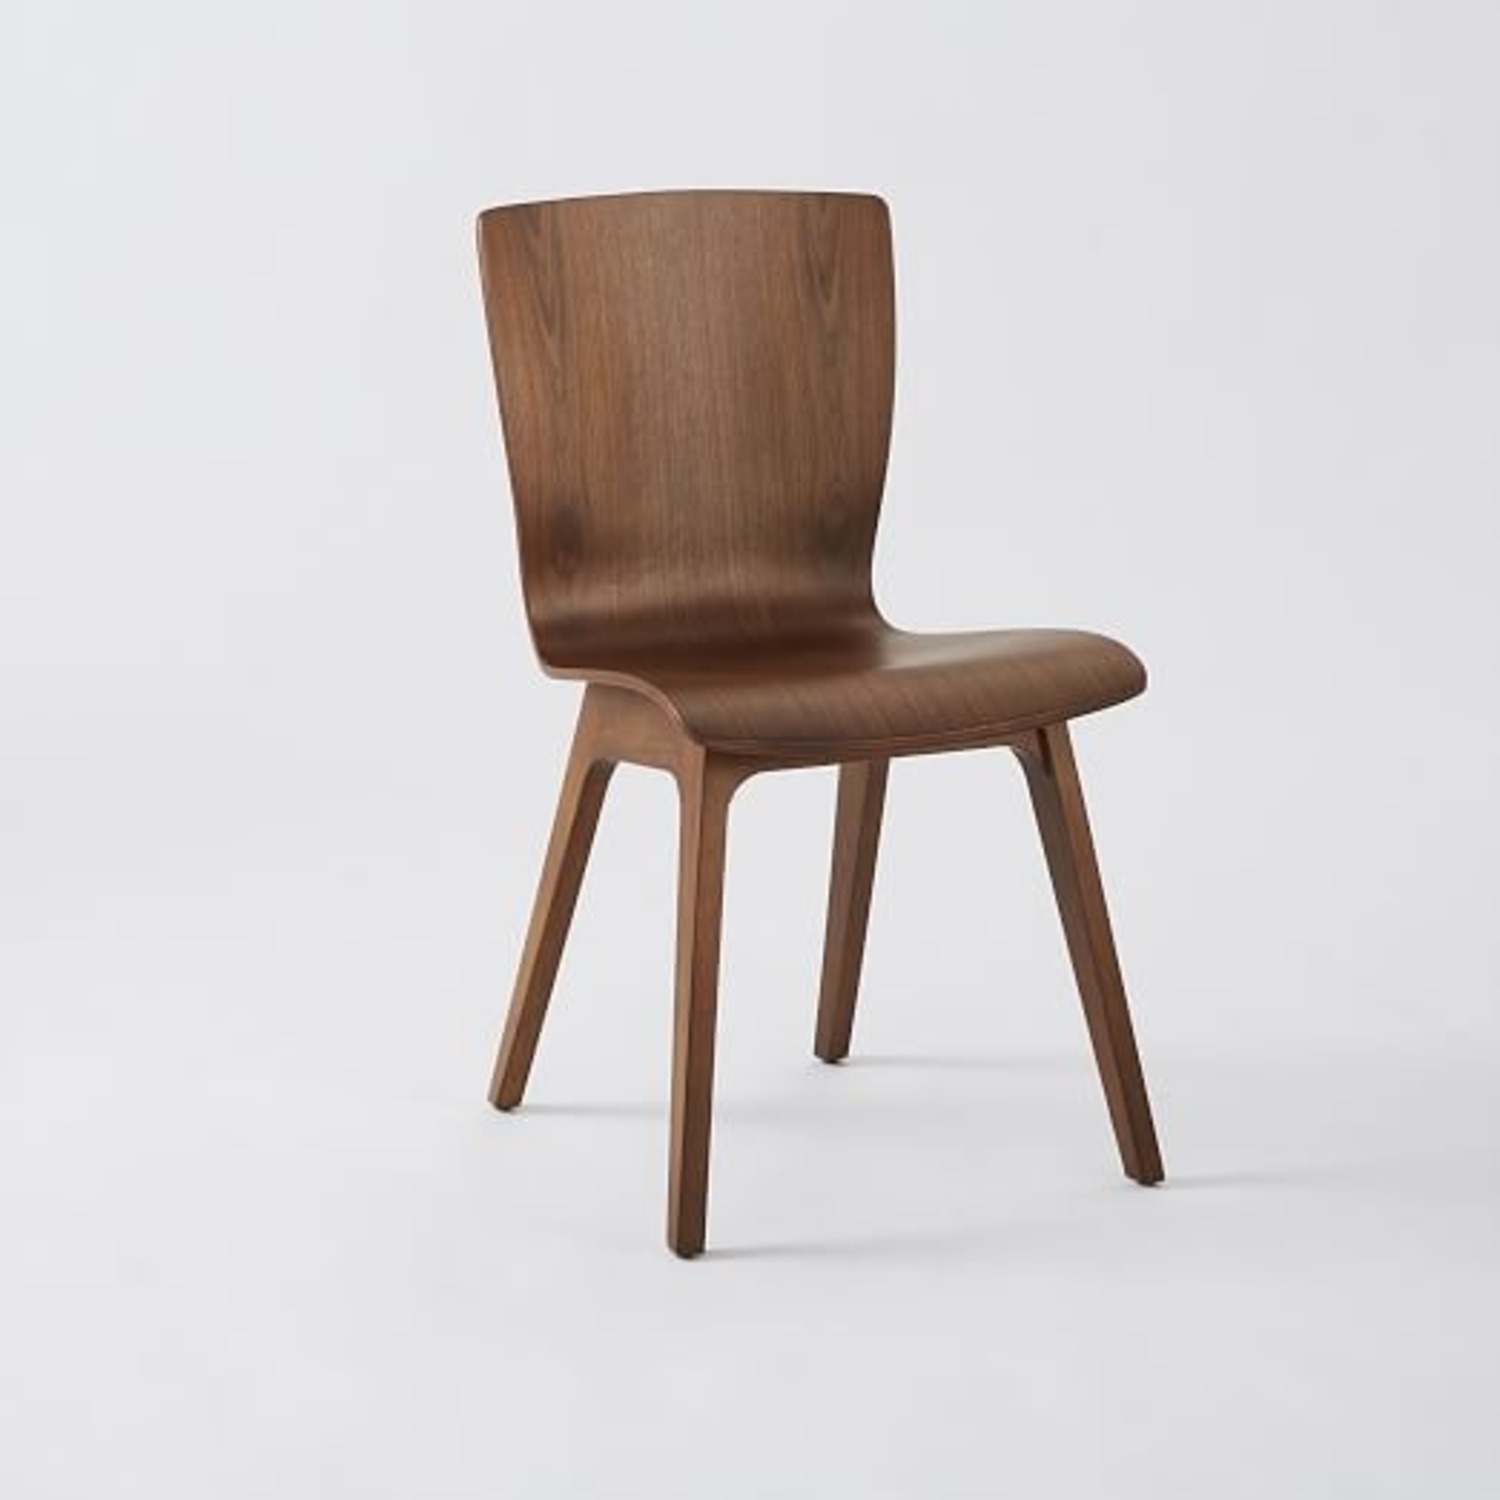 West Elm Crest Bentwood Dining Chair (Set of 2) - image-1